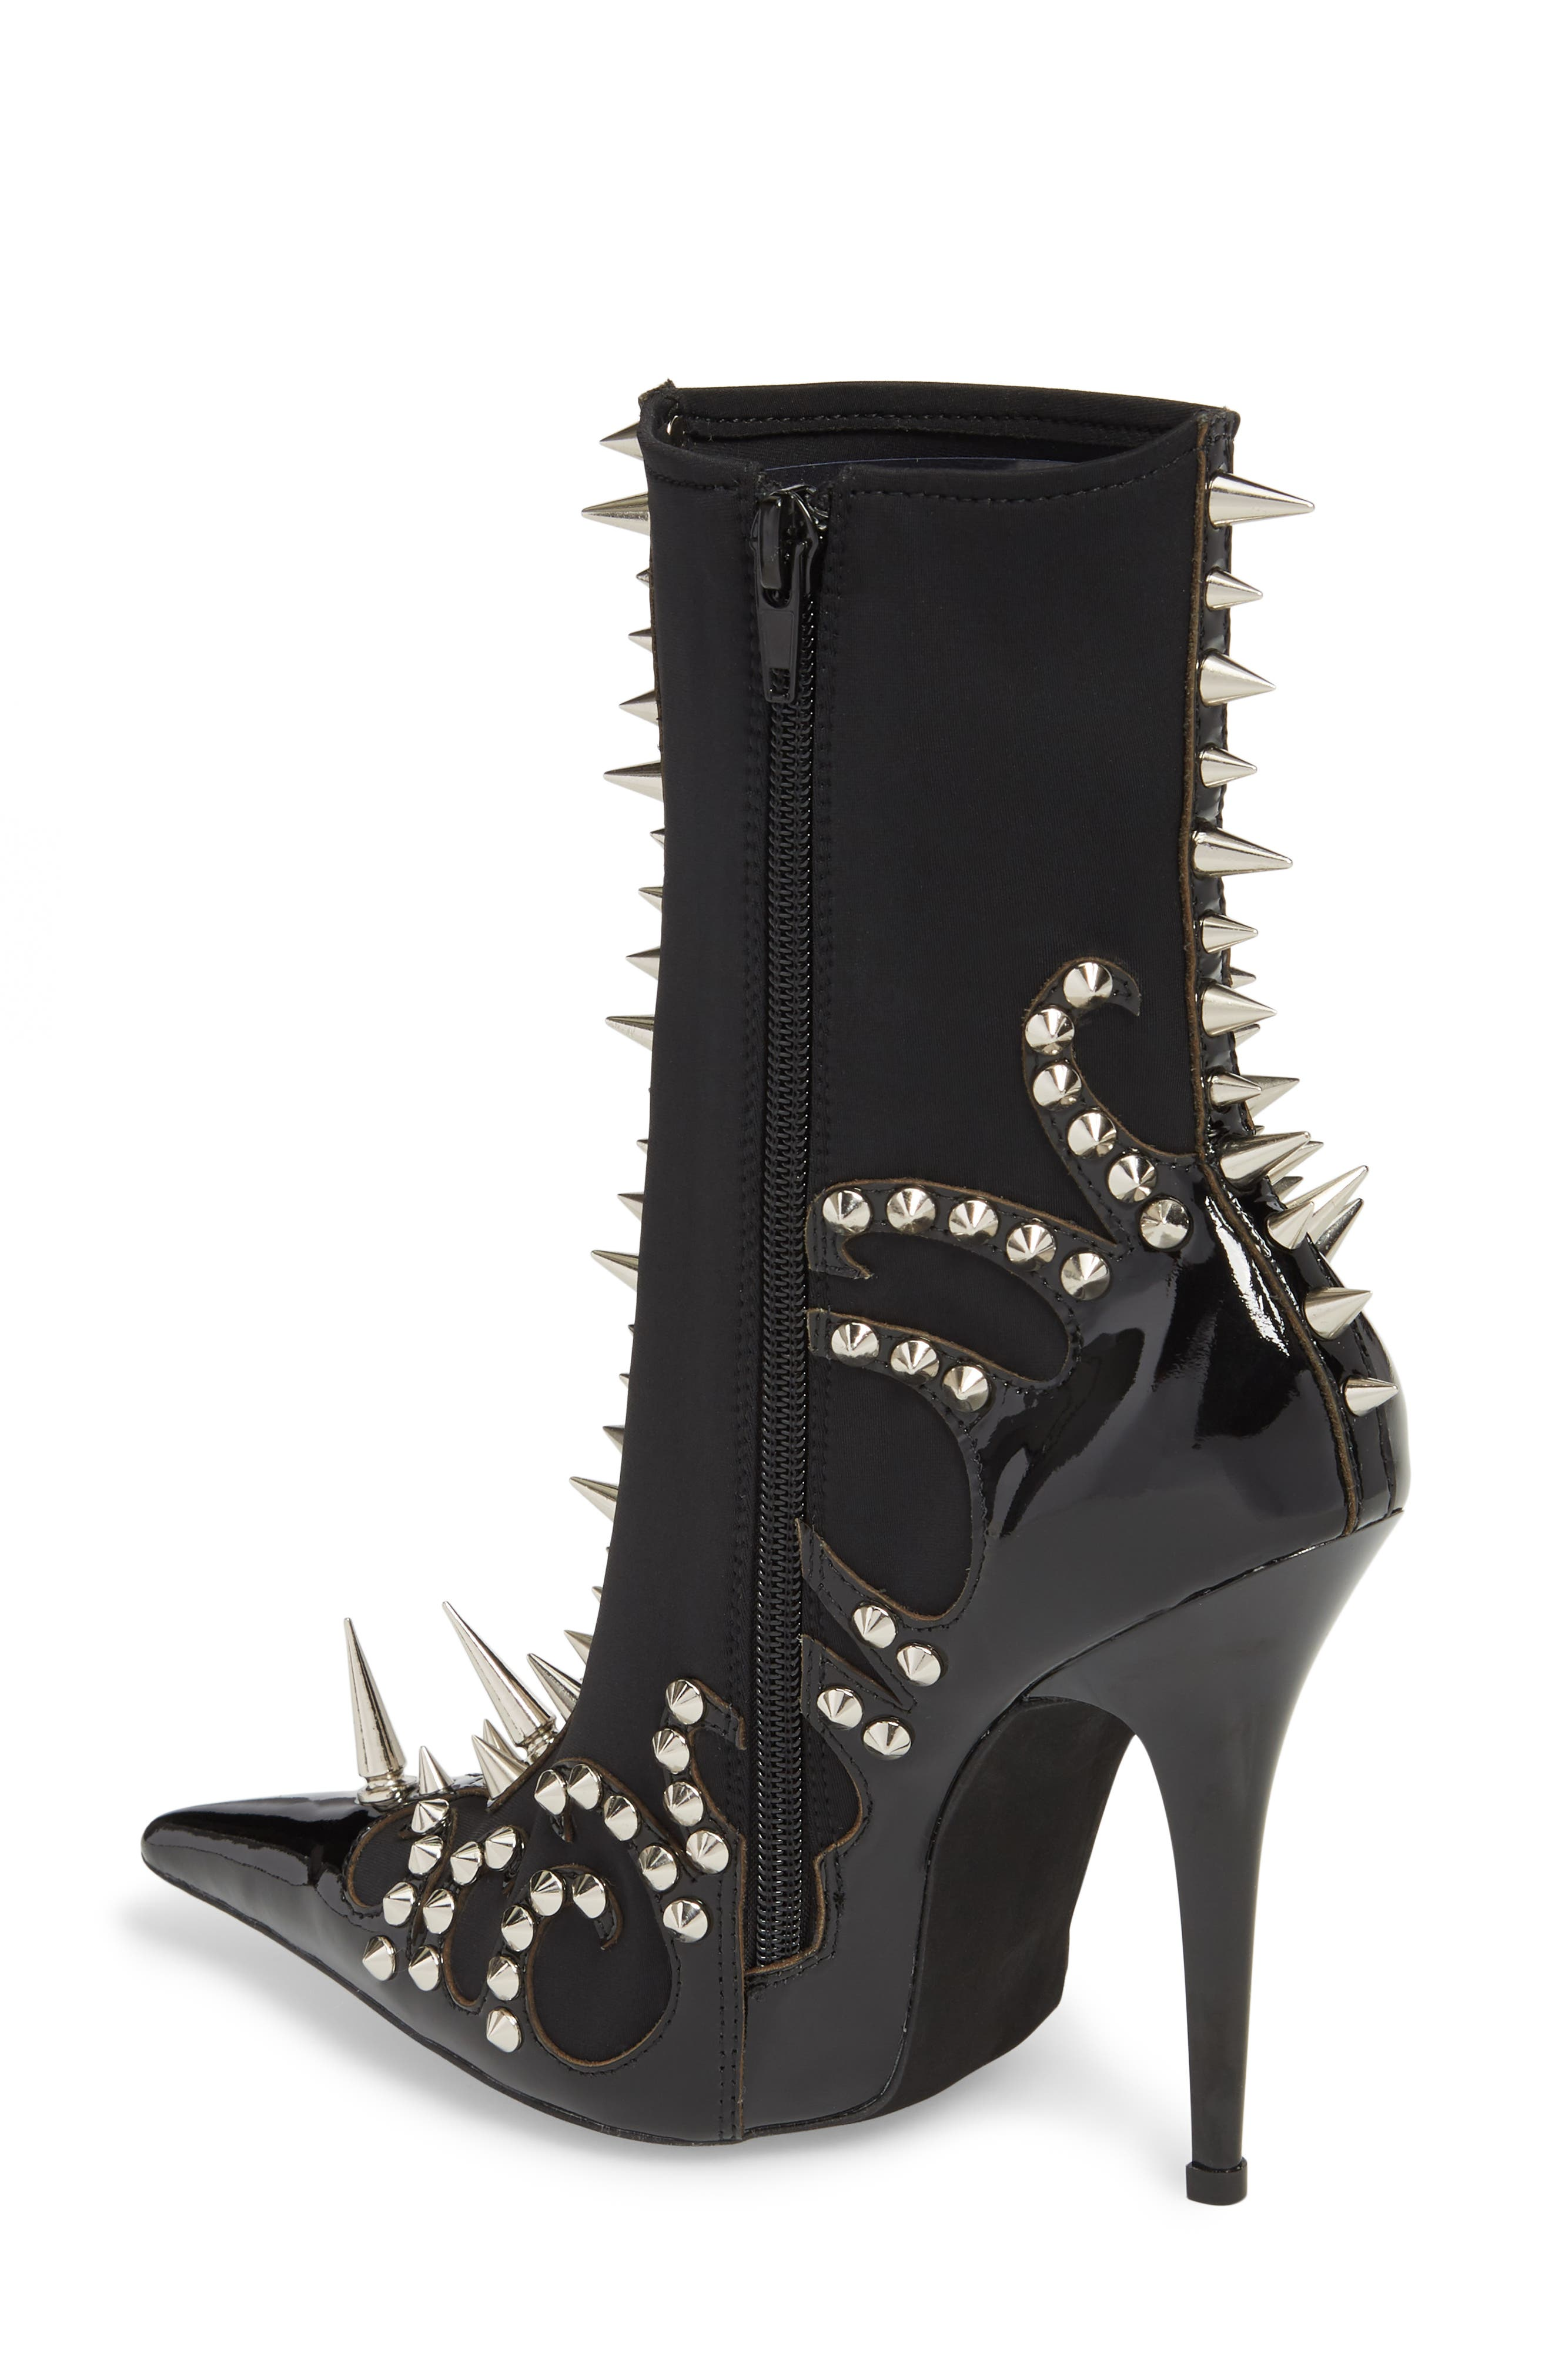 Savage Spike Bootie,                             Alternate thumbnail 2, color,                             Black/ Silver Patent Leather